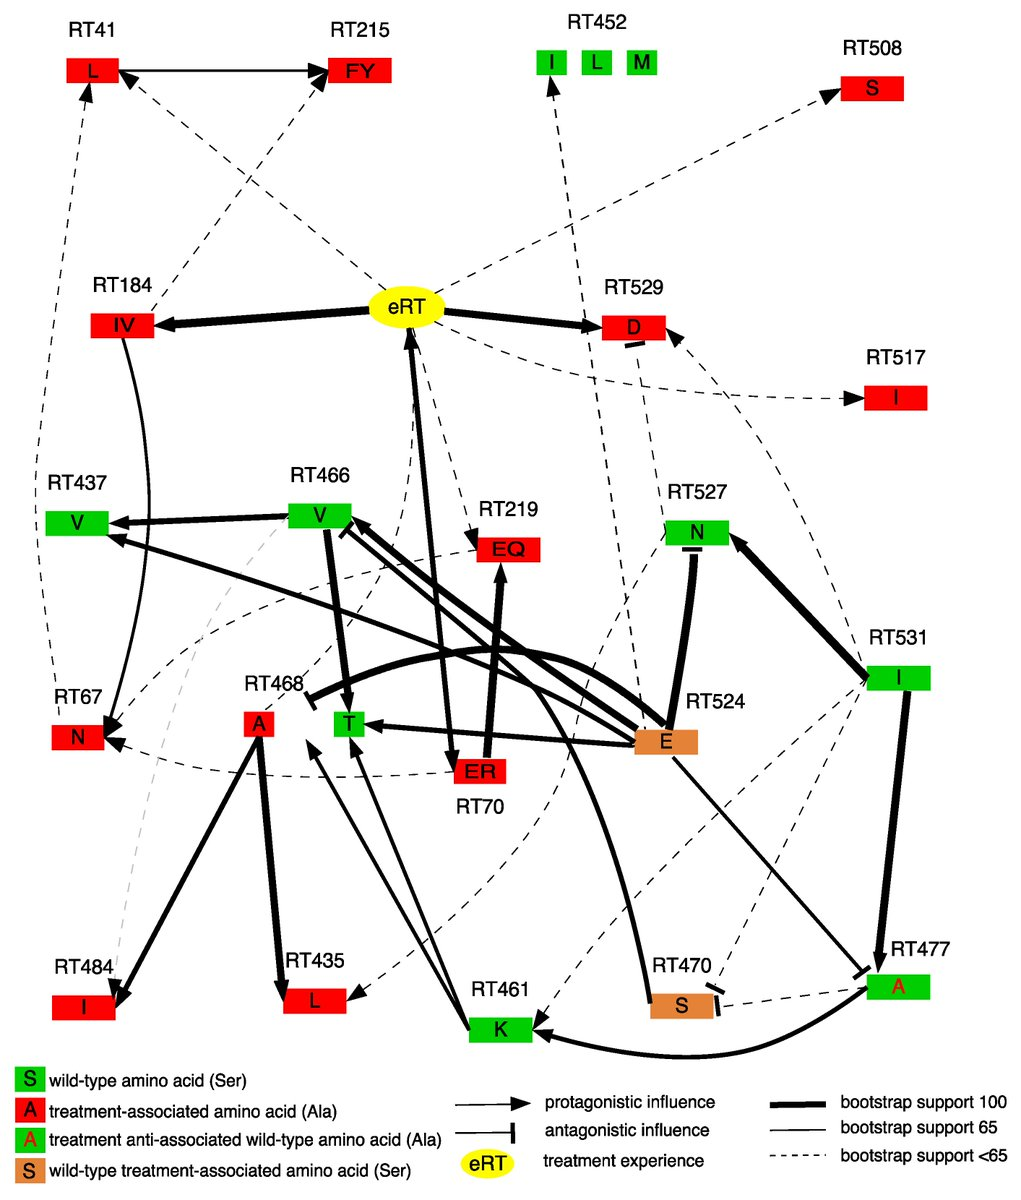 Characterization of Nucleoside Reverse Transcriptase Inhibitor-Associated #Mutations in the #RNaseH Region of #HIV1 Subtype C Infected Individuals by Sinaye Ngcapu and colleagues  http://www. mdpi.com/1999-4915/9/11 /330 &nbsp; …  #NRTIs<br>http://pic.twitter.com/yaTMdTiV5a